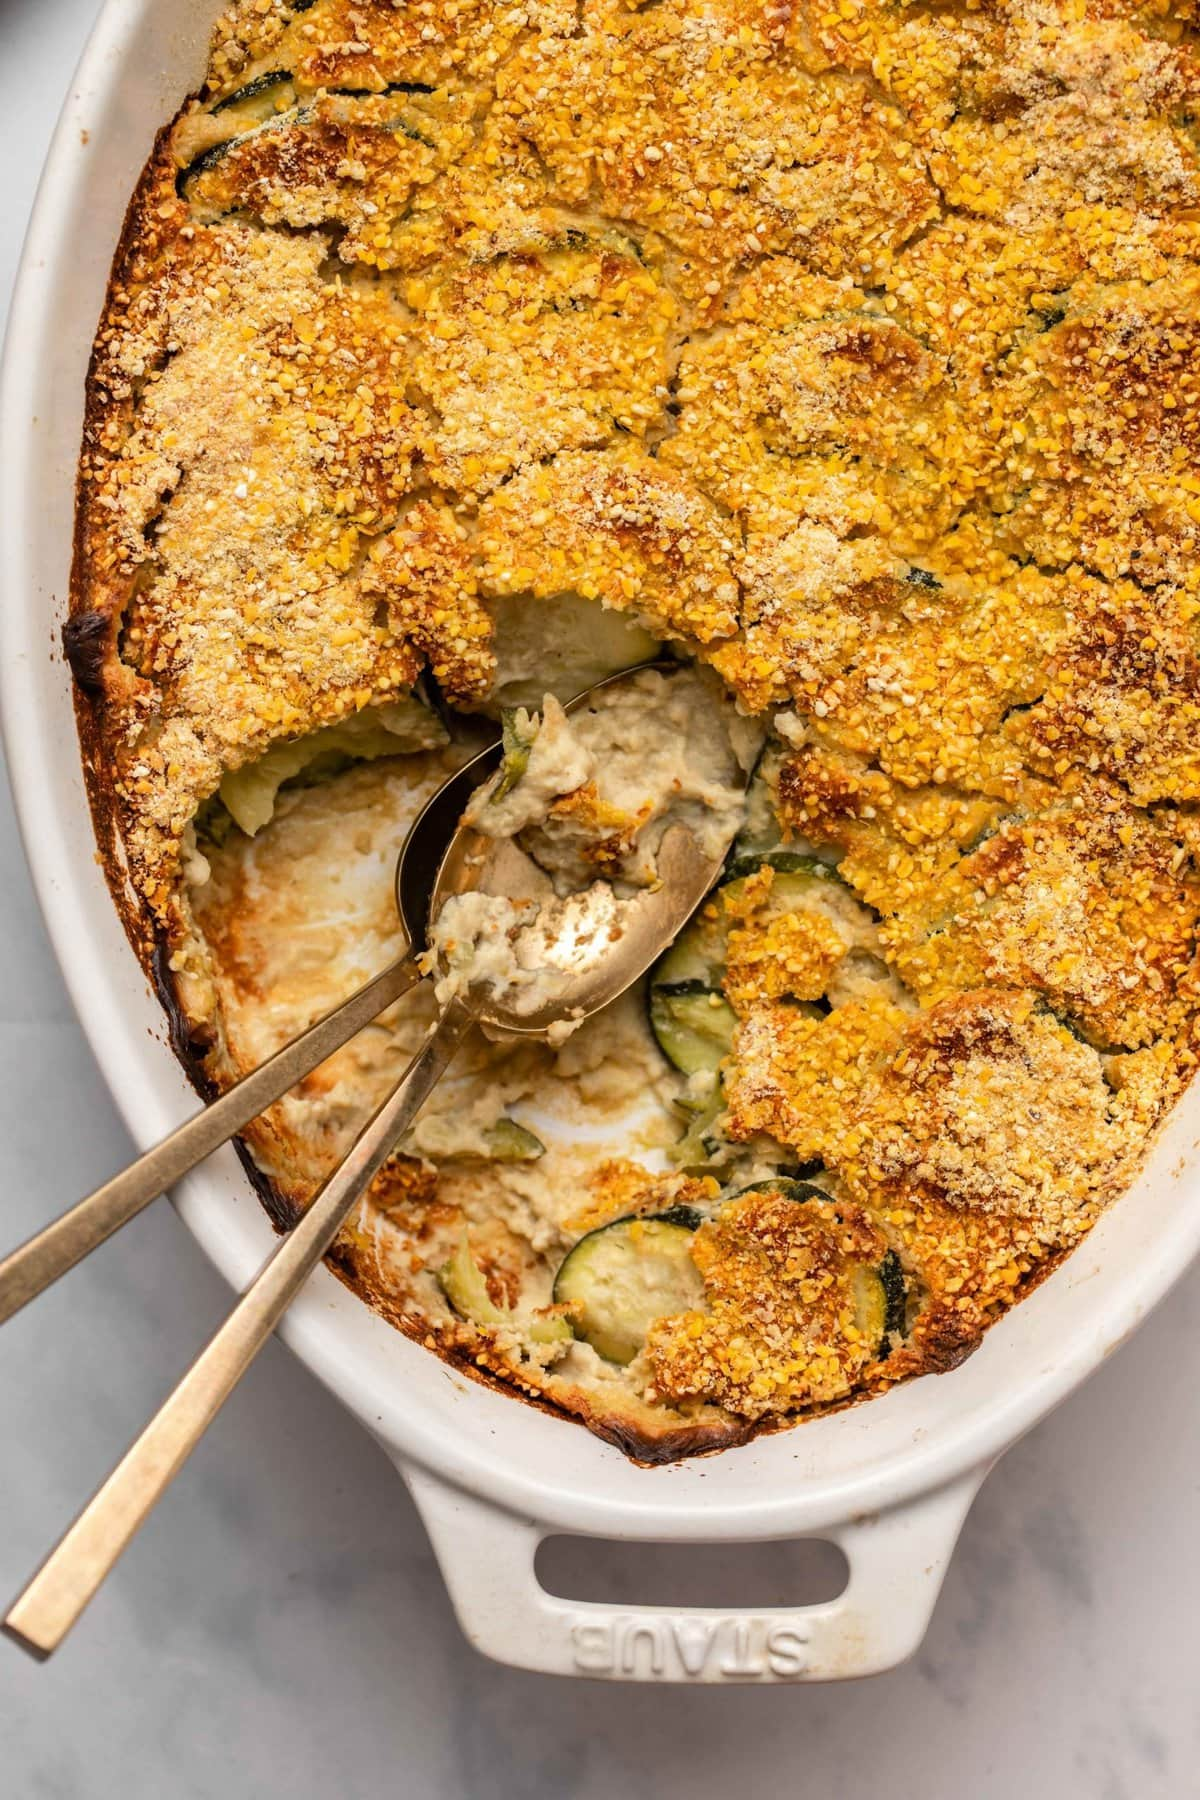 Close-up photo of zucchini gratin in white casserole dish with a scoop taken out of it